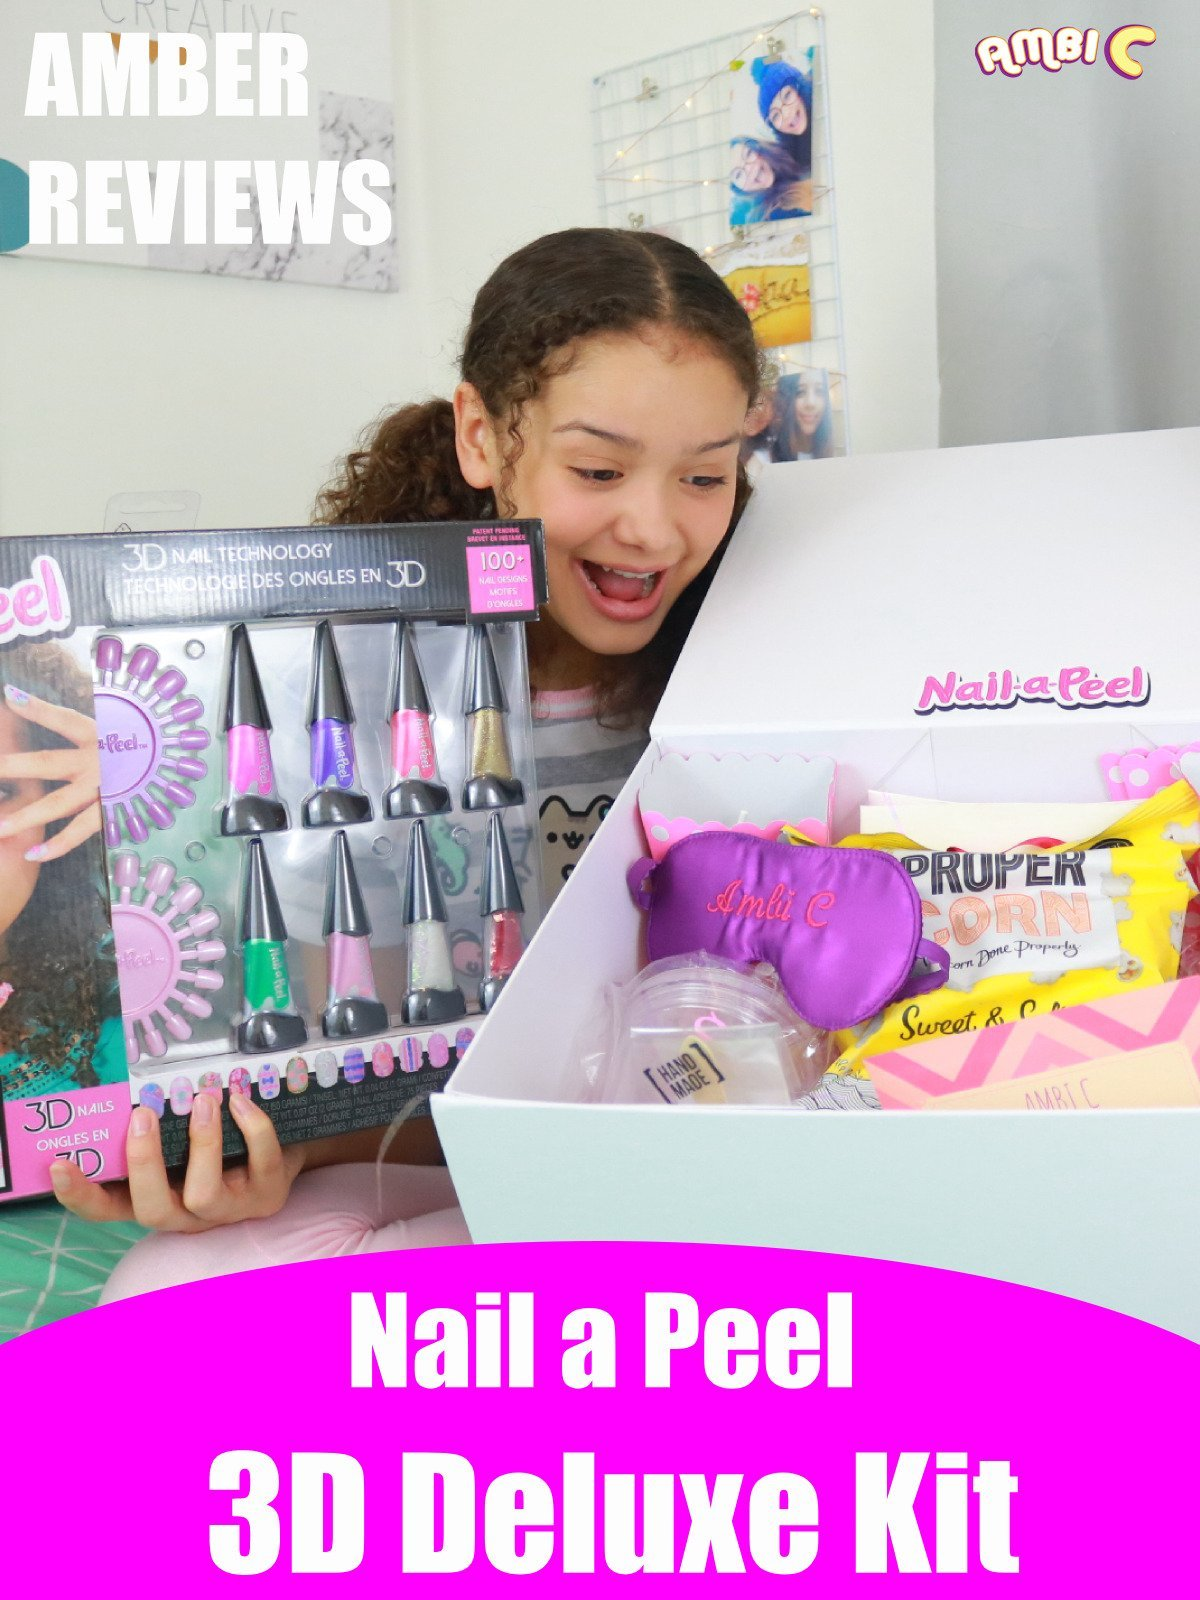 Amber Reviews Nail a Peel 3D Deluxe Kit